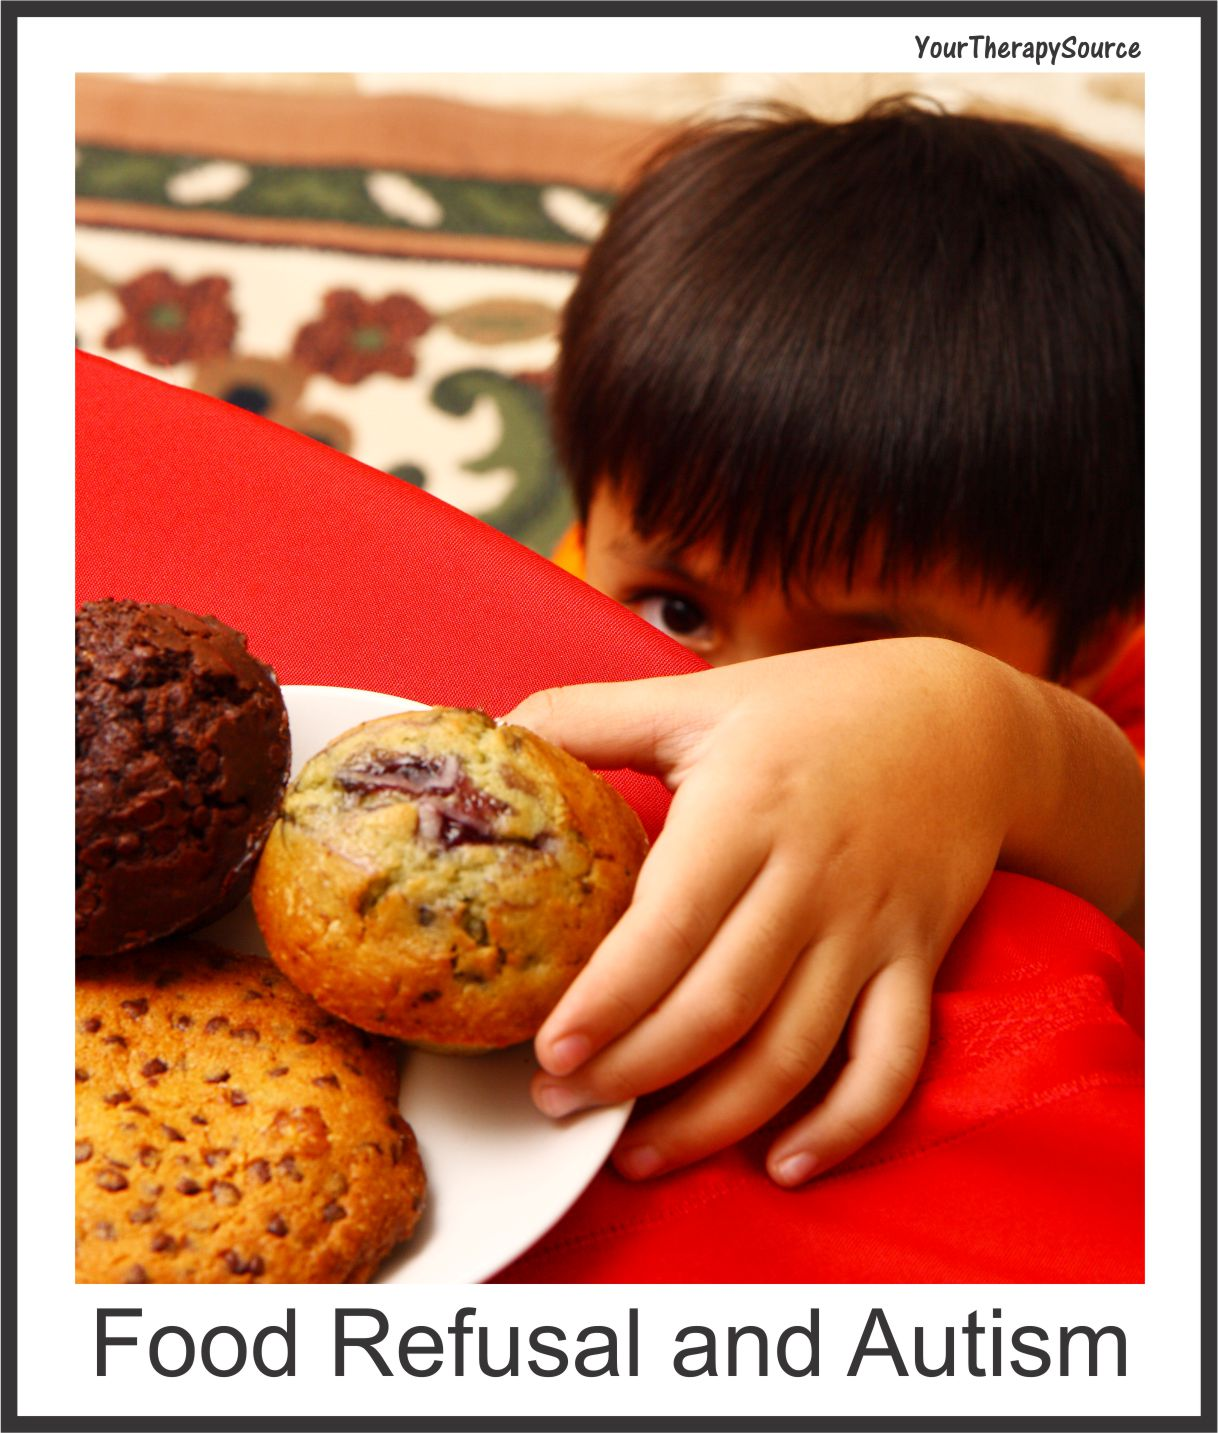 food refusal autism from www.YourTherapySource.com